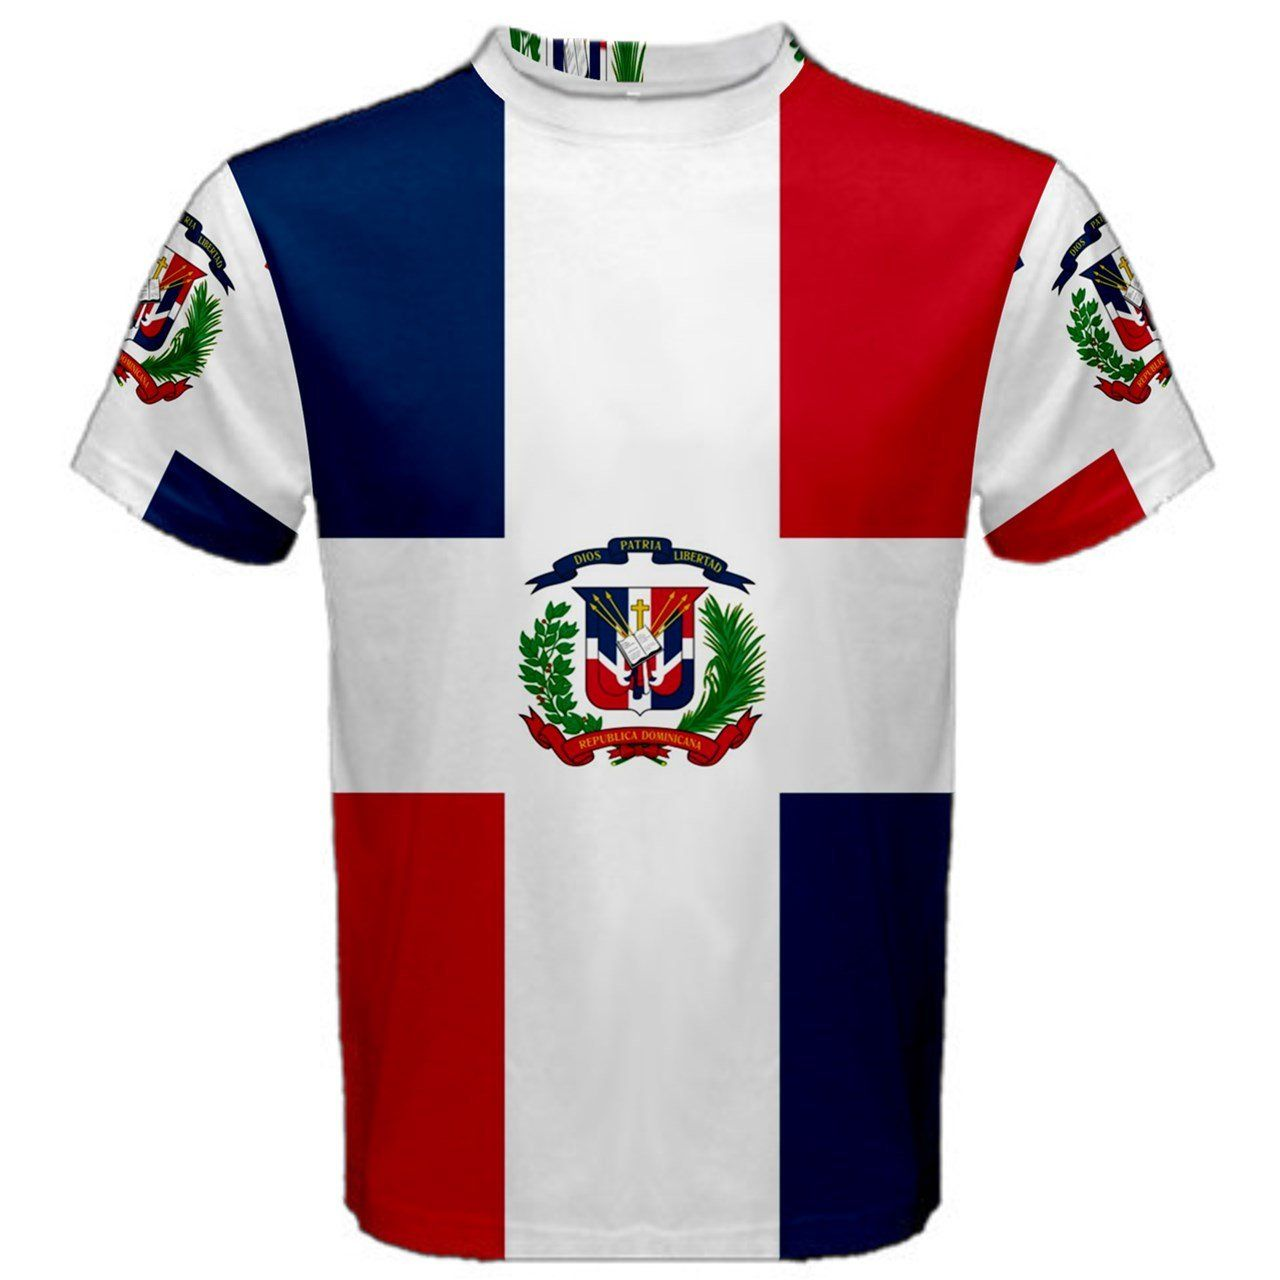 XL TEE ENGLAND WORLD CUP 2018 T SHIRT FOOTBALL SOCCER SUBLIMATION SIZES S